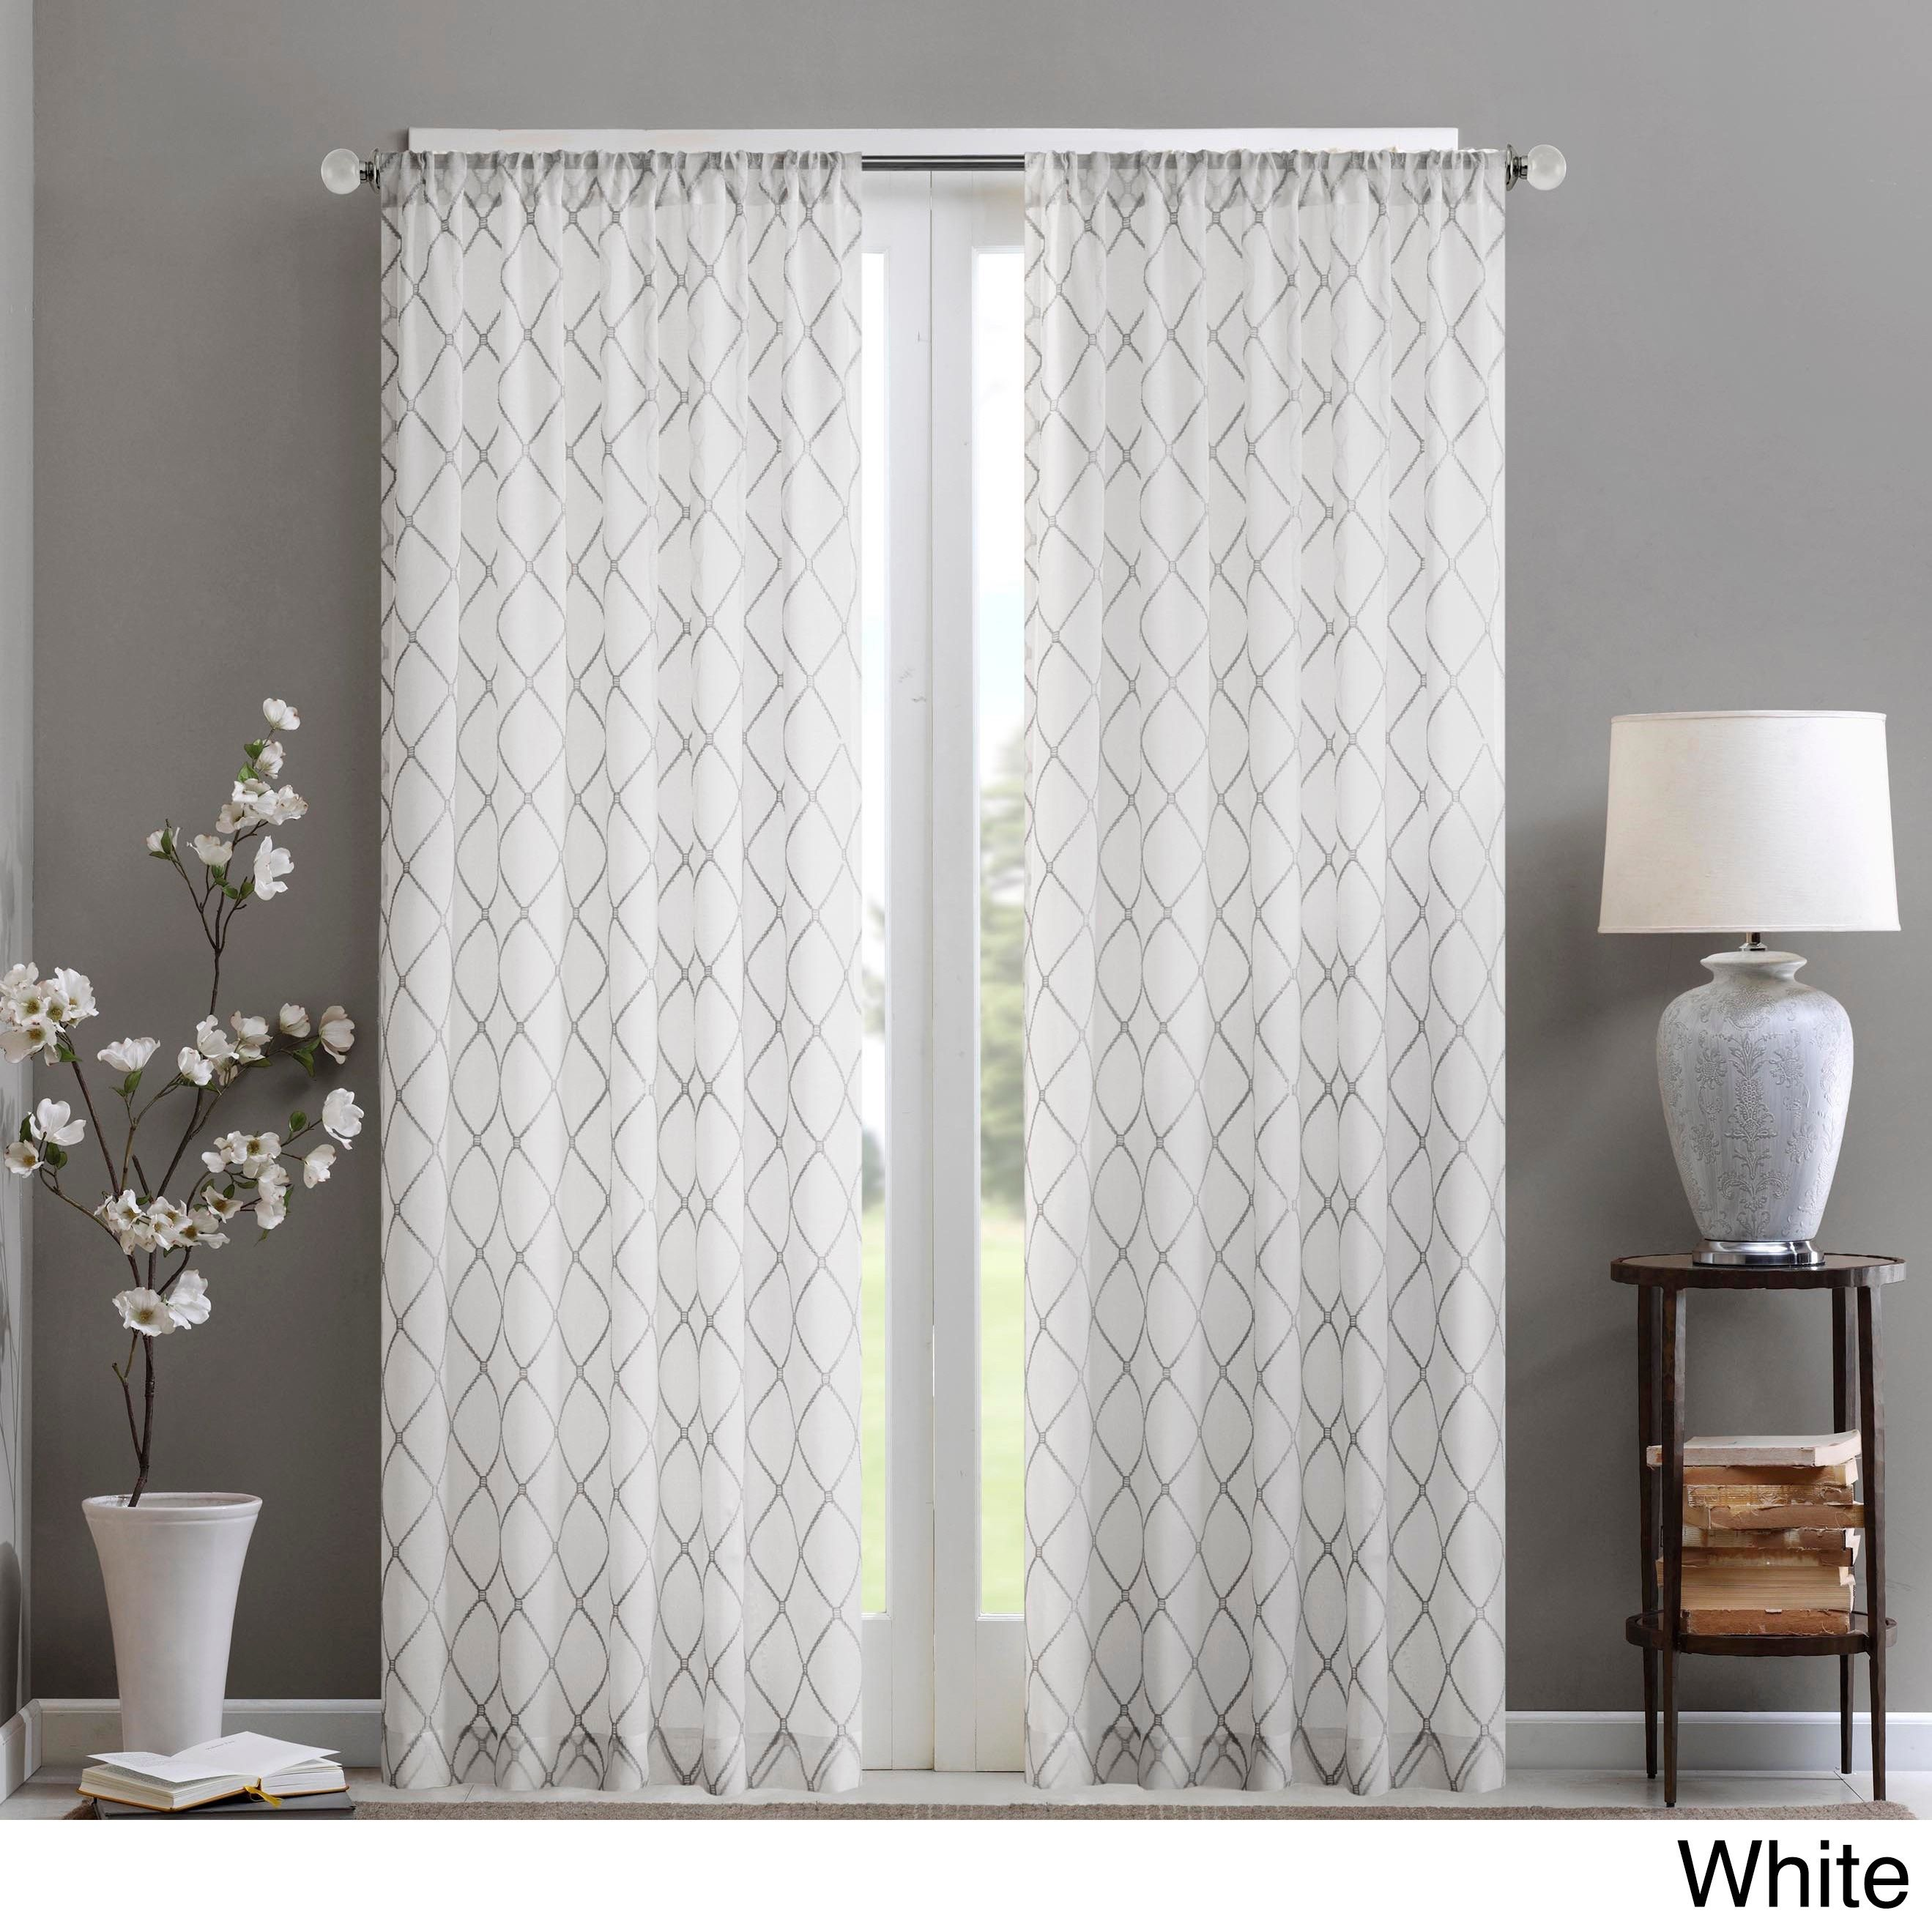 Madison park iris embroidered diamond sheer curtain panel for Patterned sheer curtain panels